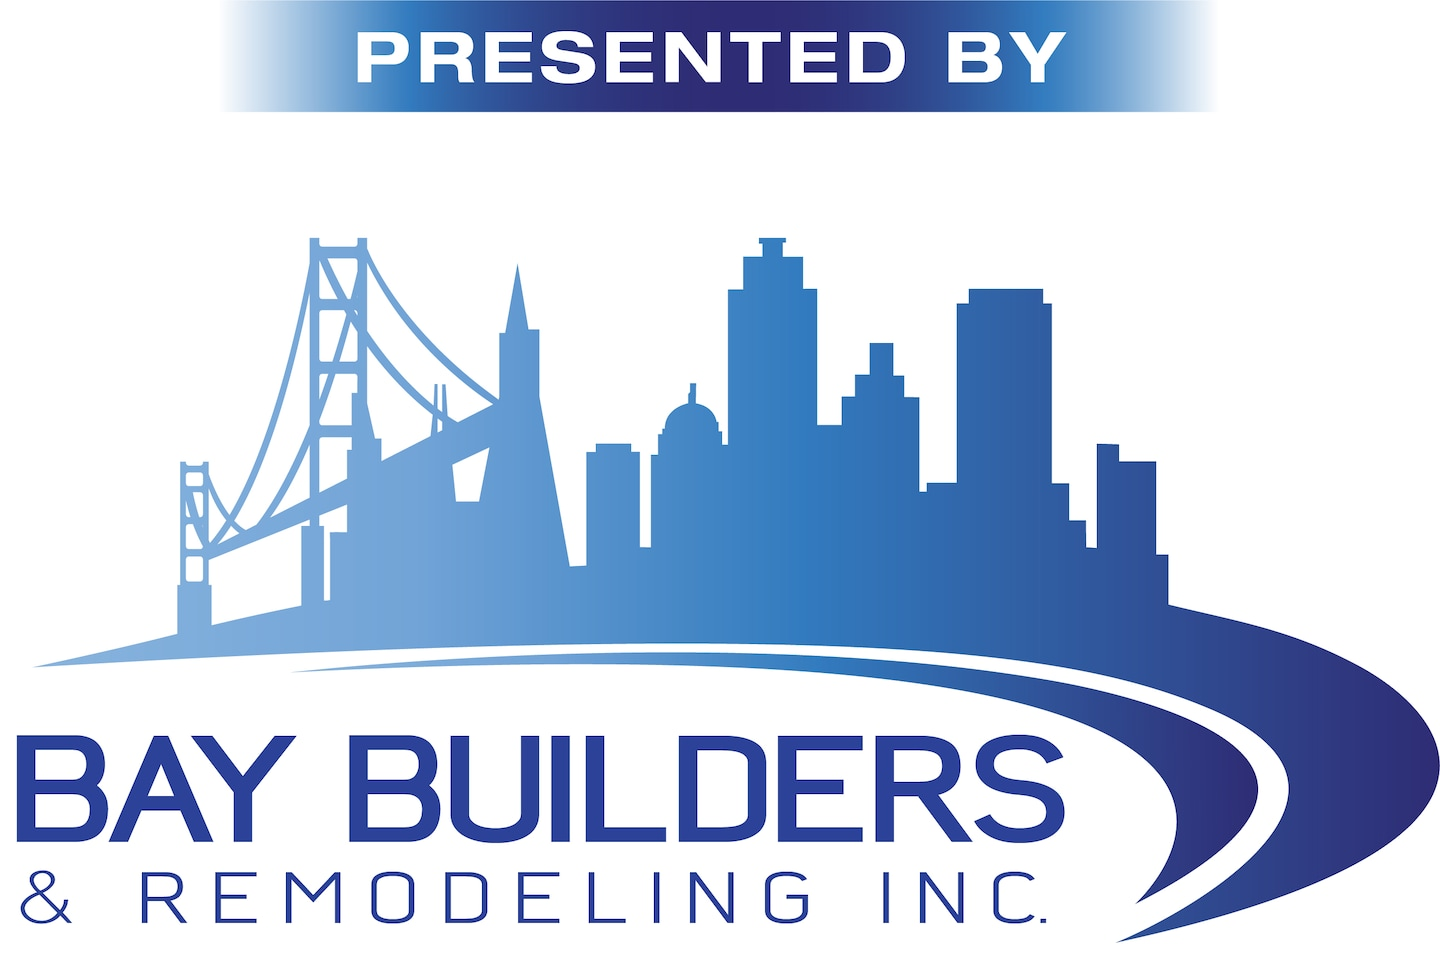 Bay Builders and Remodeling